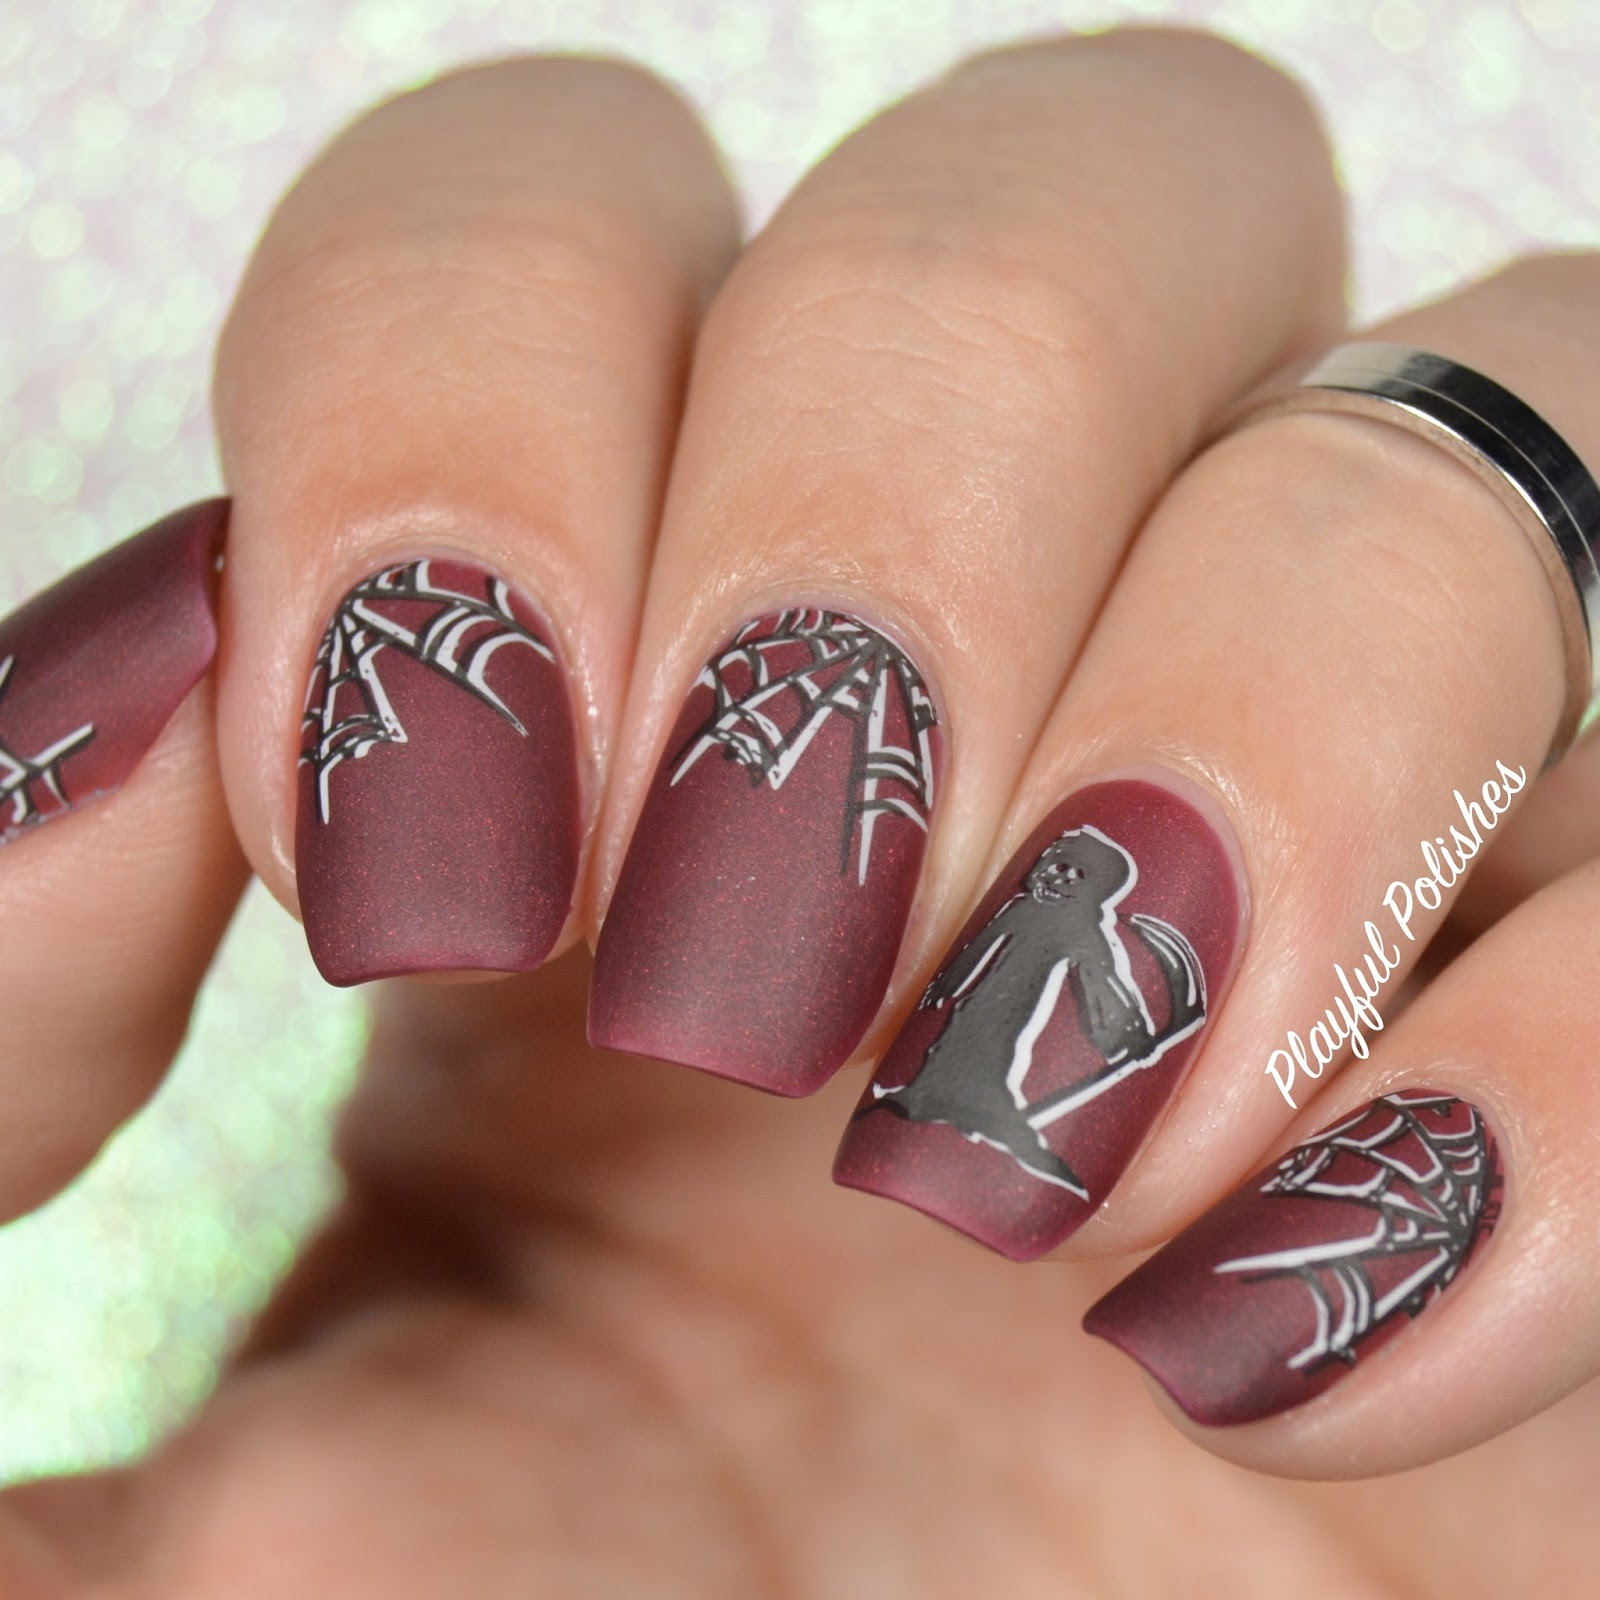 Nail Colors Halloween: Playful Polishes: CUTE HALLOWEEN NAILS